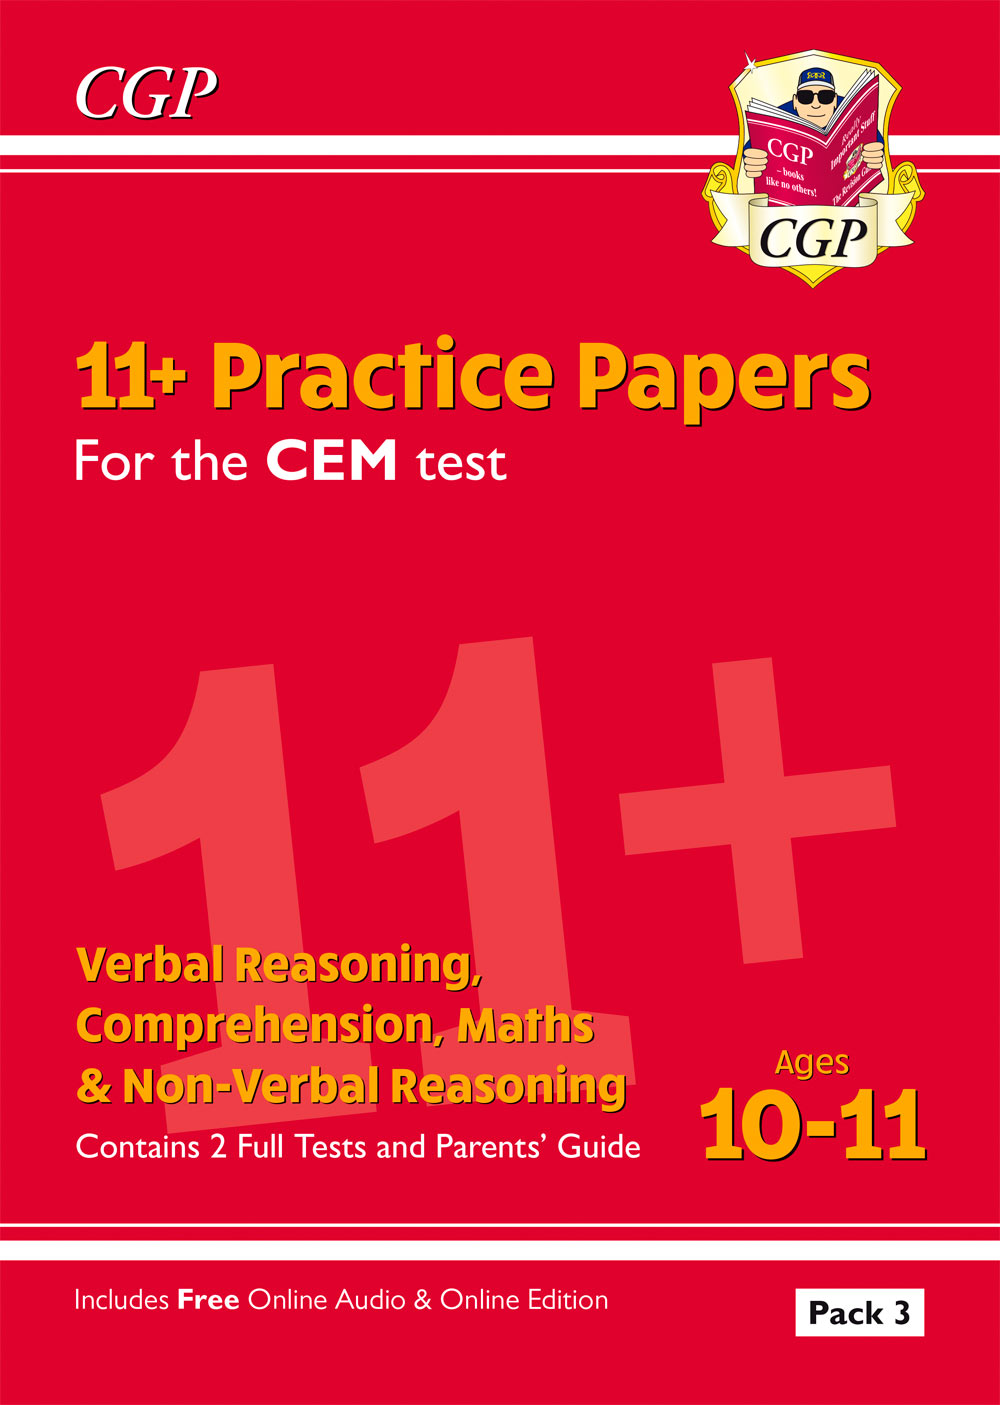 ELP3DE2 - 11+ CEM Practice Papers: Ages 10-11 - Pack 3 (with Parents' Guide & Online Edition)